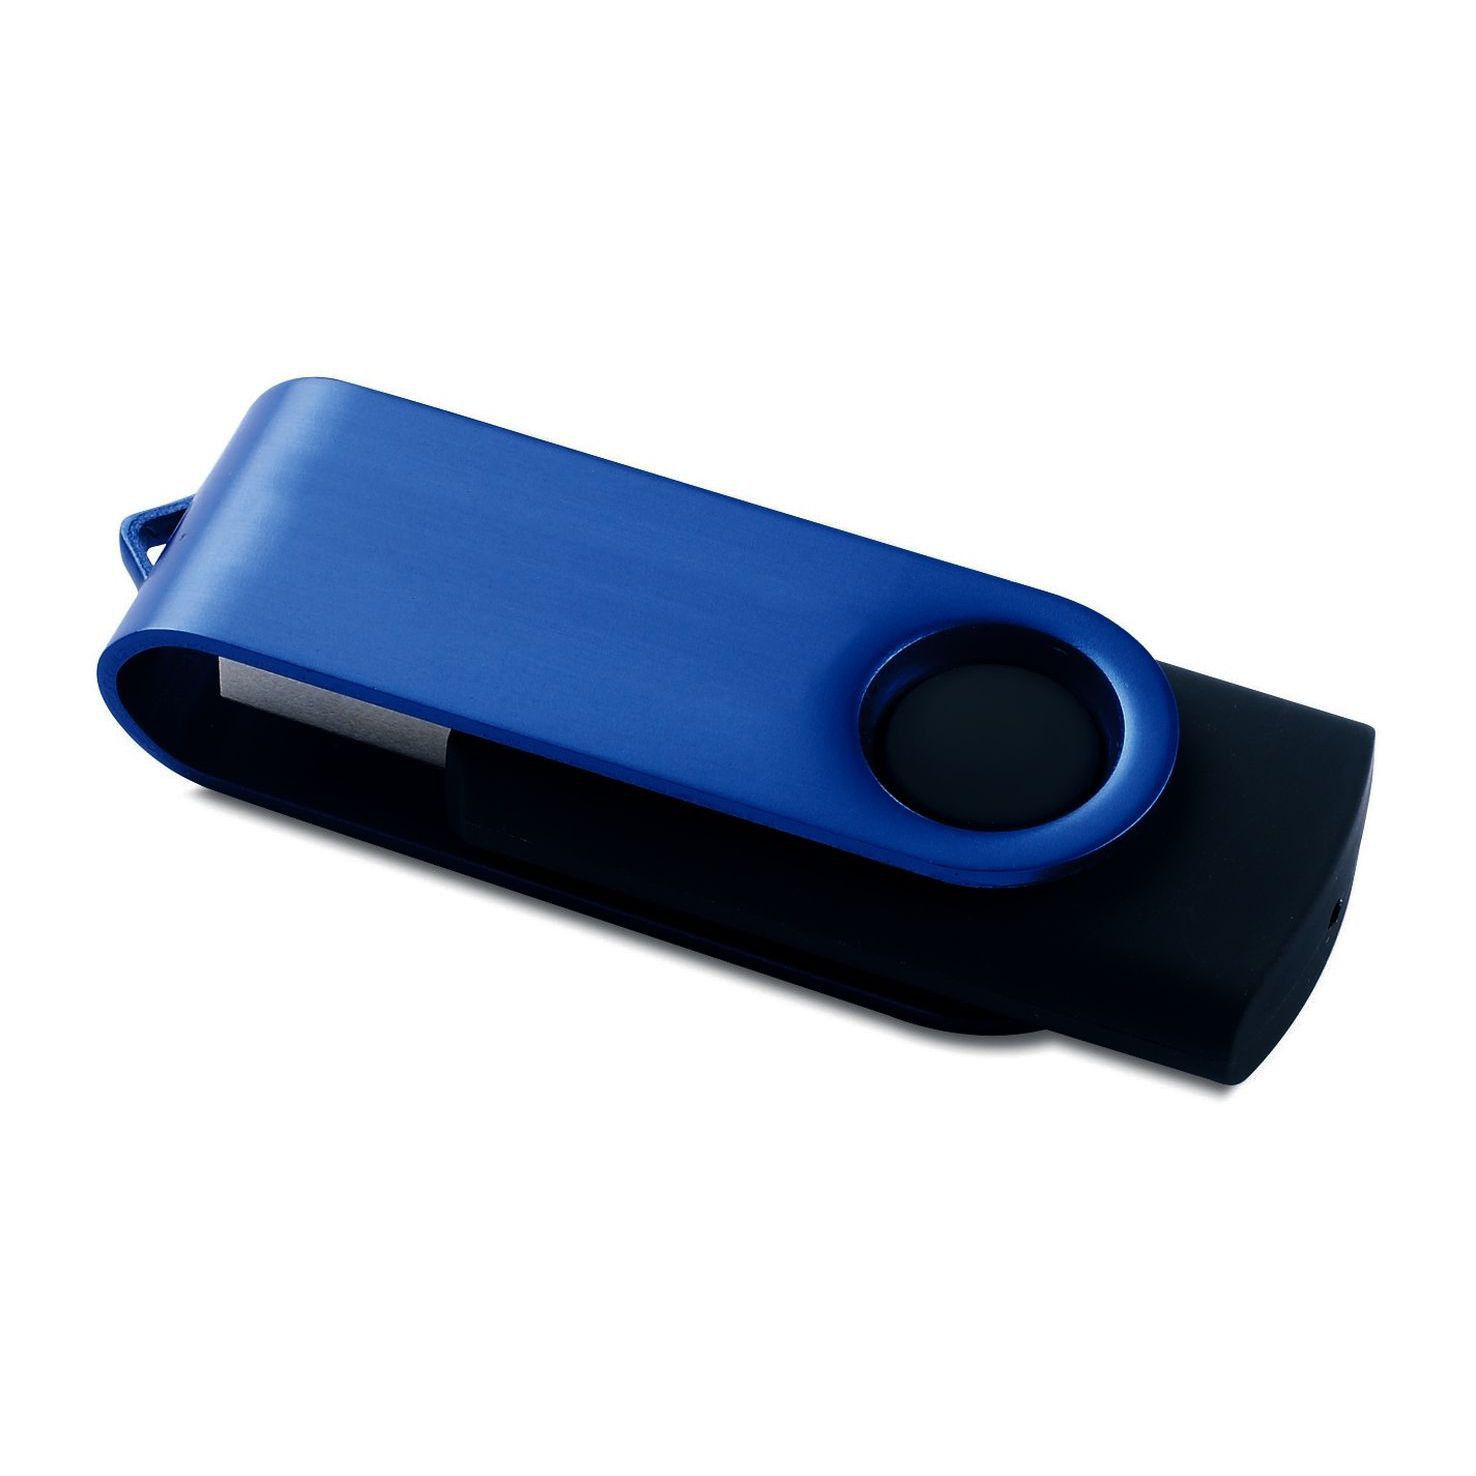 Blauwe Twister USB stick 4GB